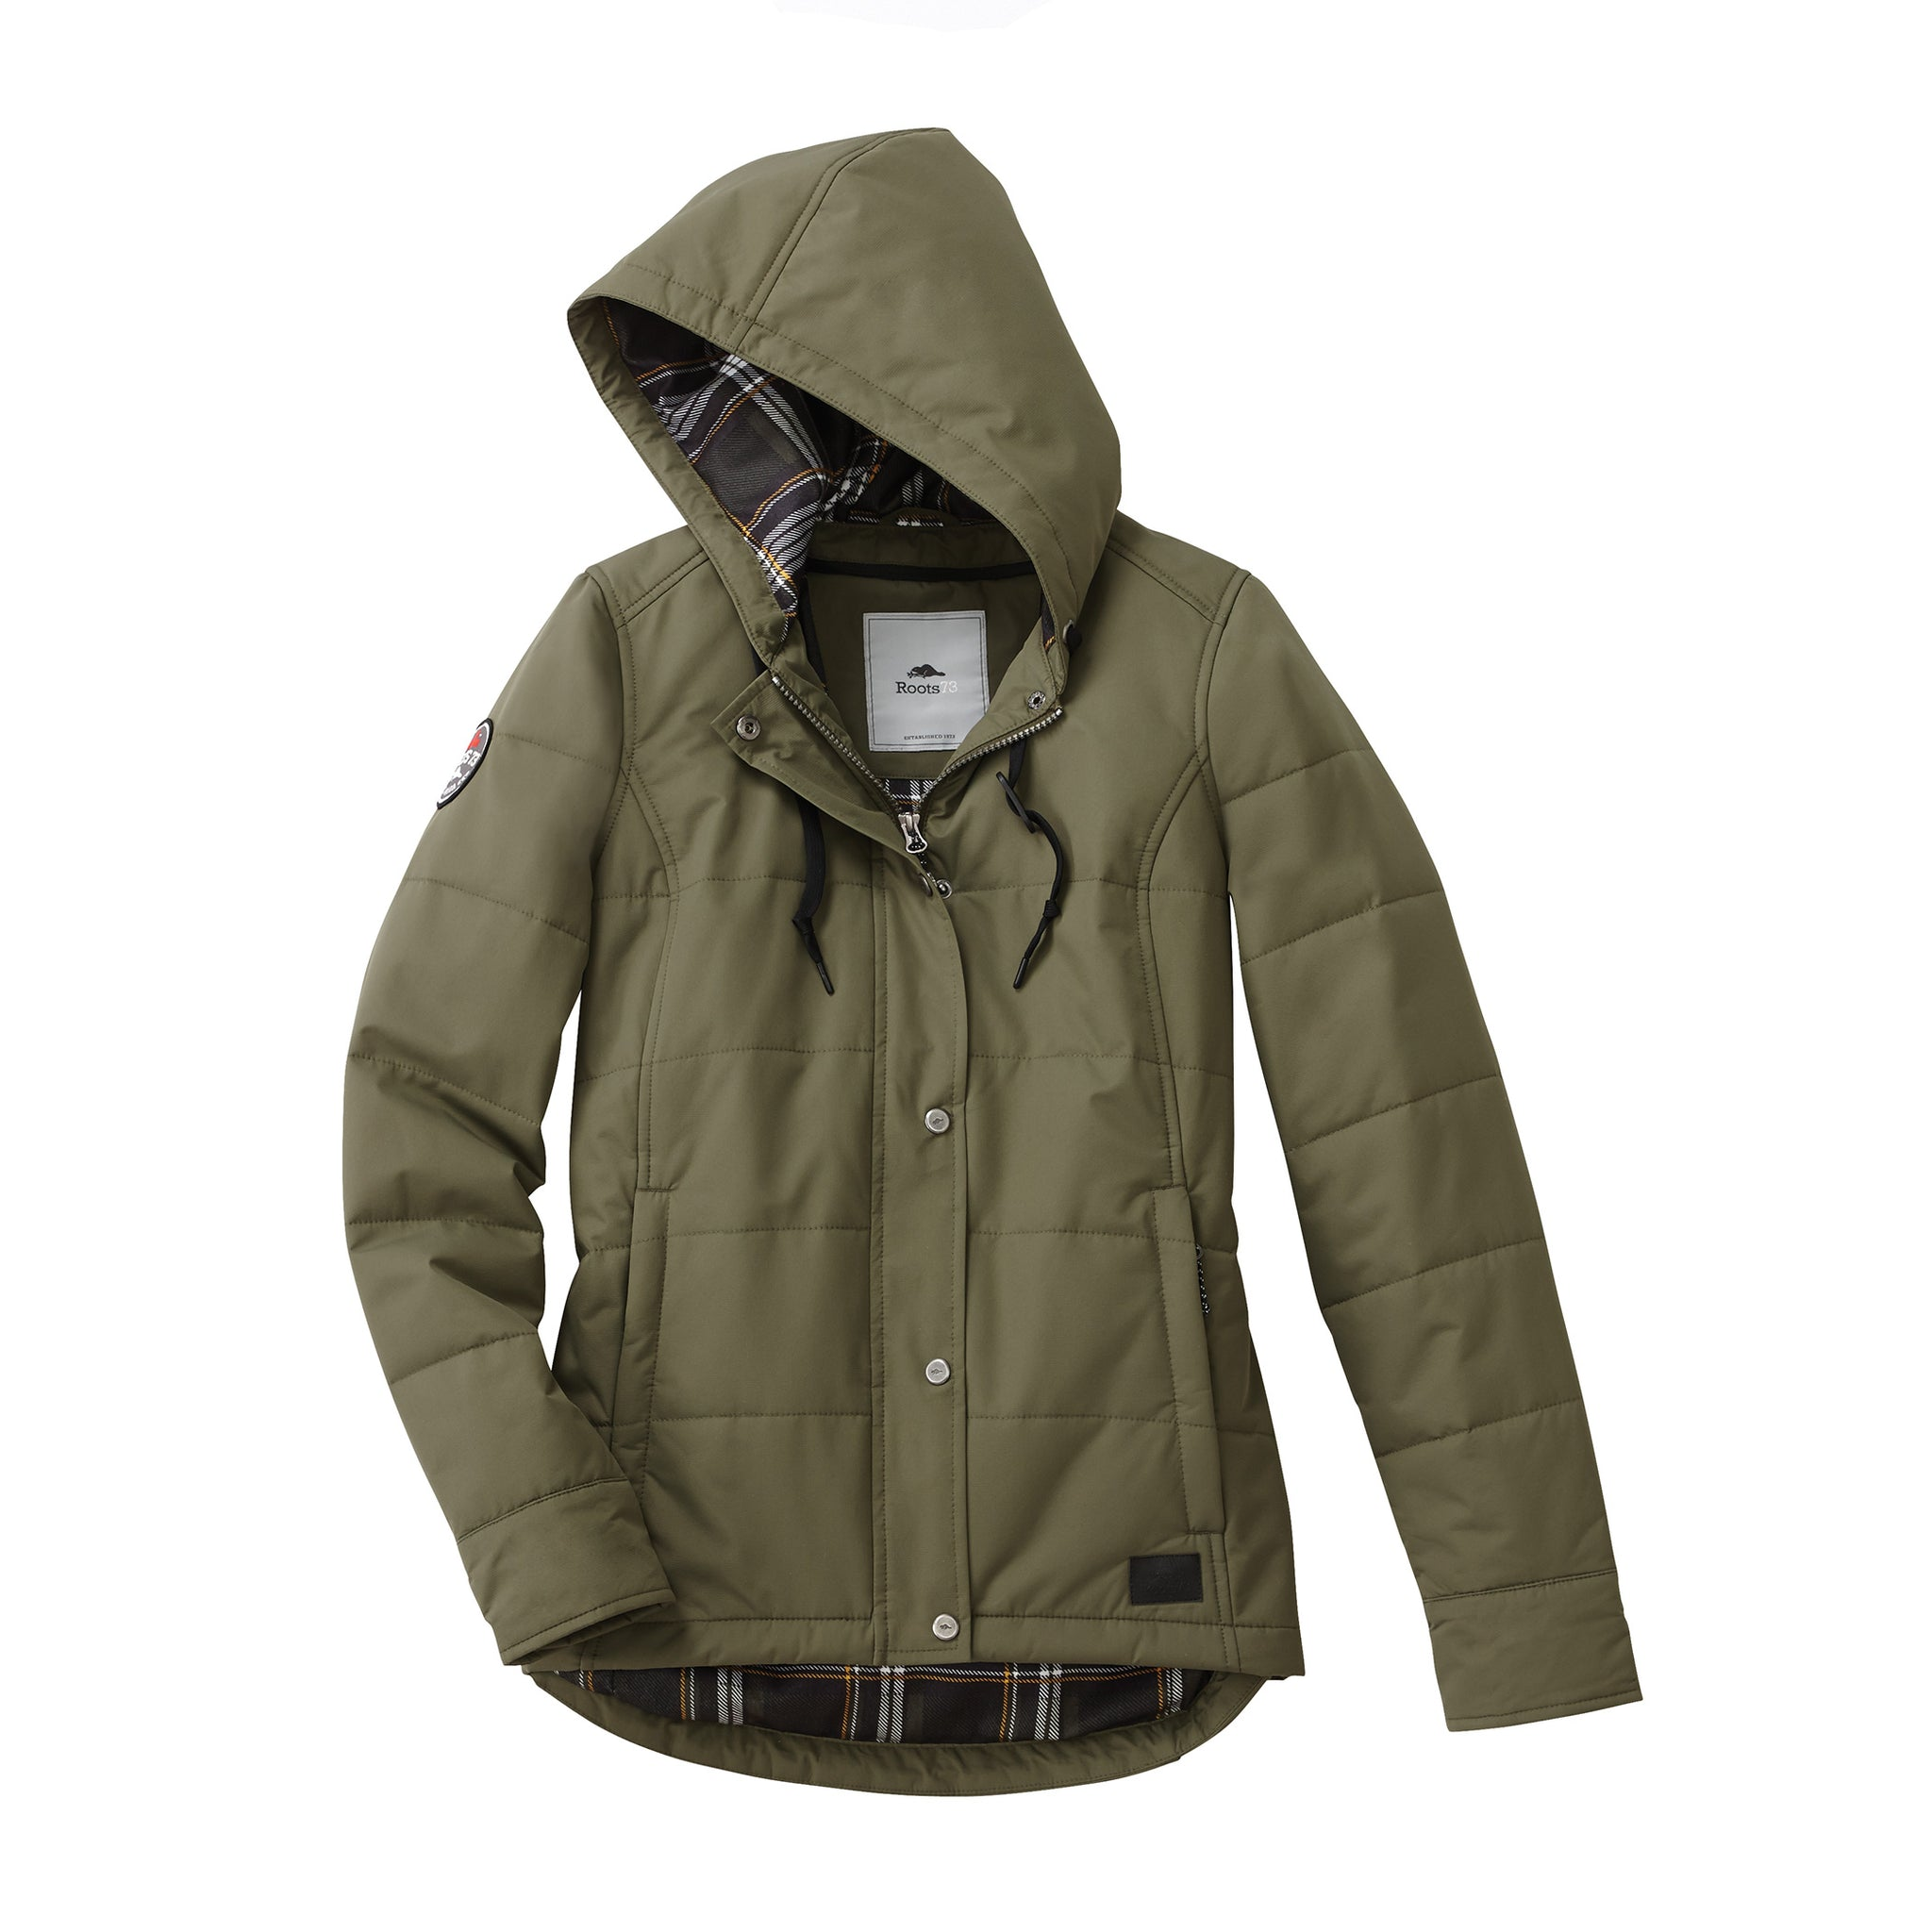 ROOTS73 LADIES GRAVENHURST INSULATED JACKET